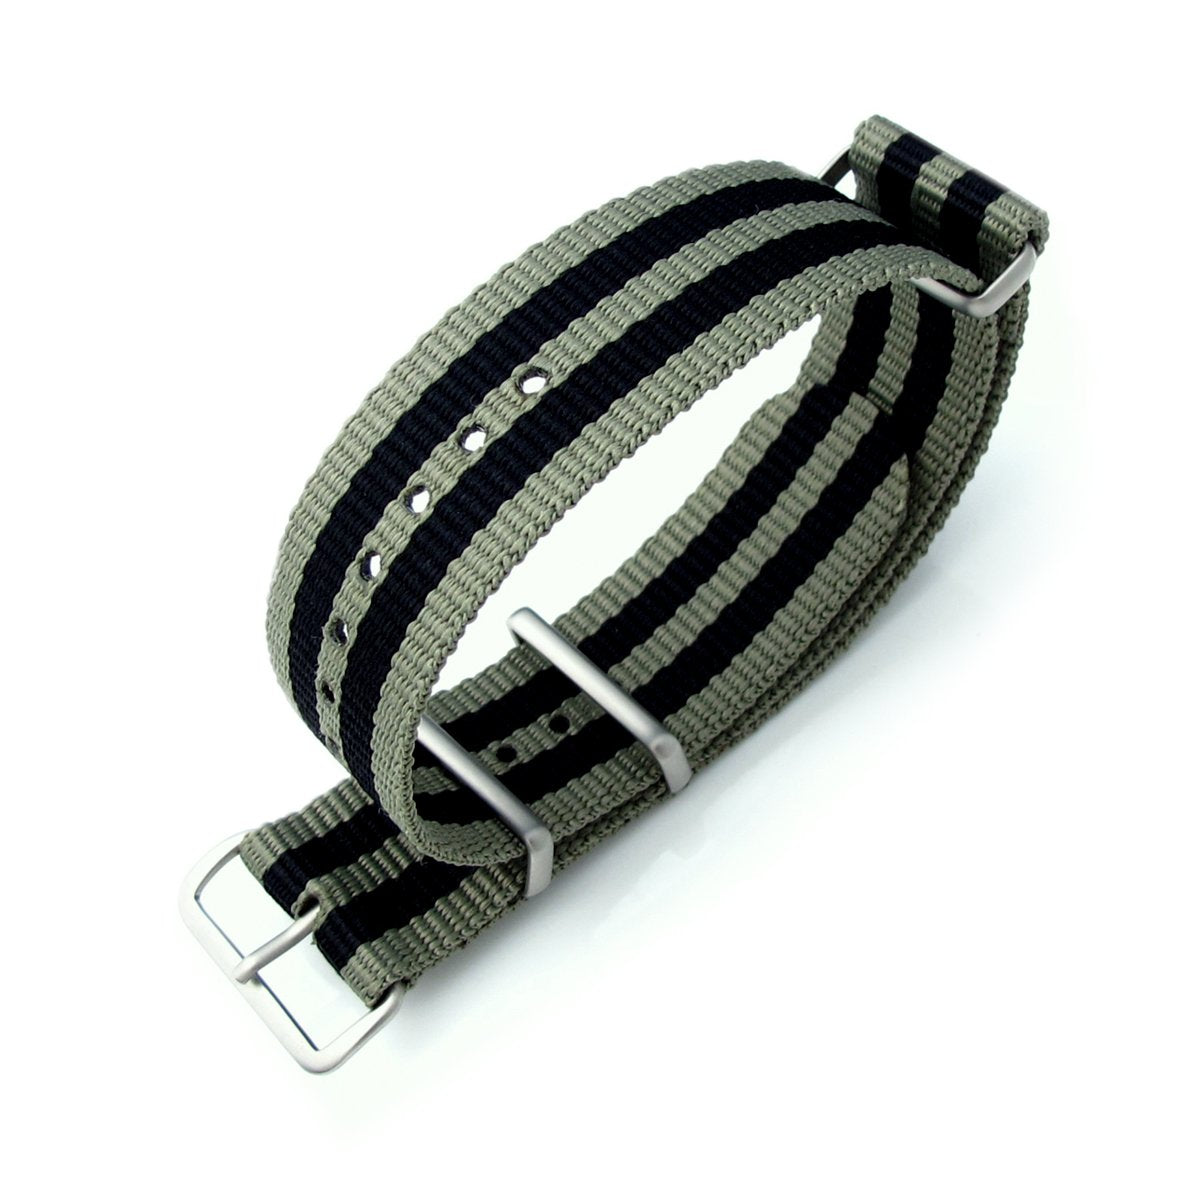 MiLTAT 20mm 21mm or 22mm G10 NATO Military Watch Strap Ballistic Nylon Armband Brushed Military Green & Black Strapcode Watch Bands